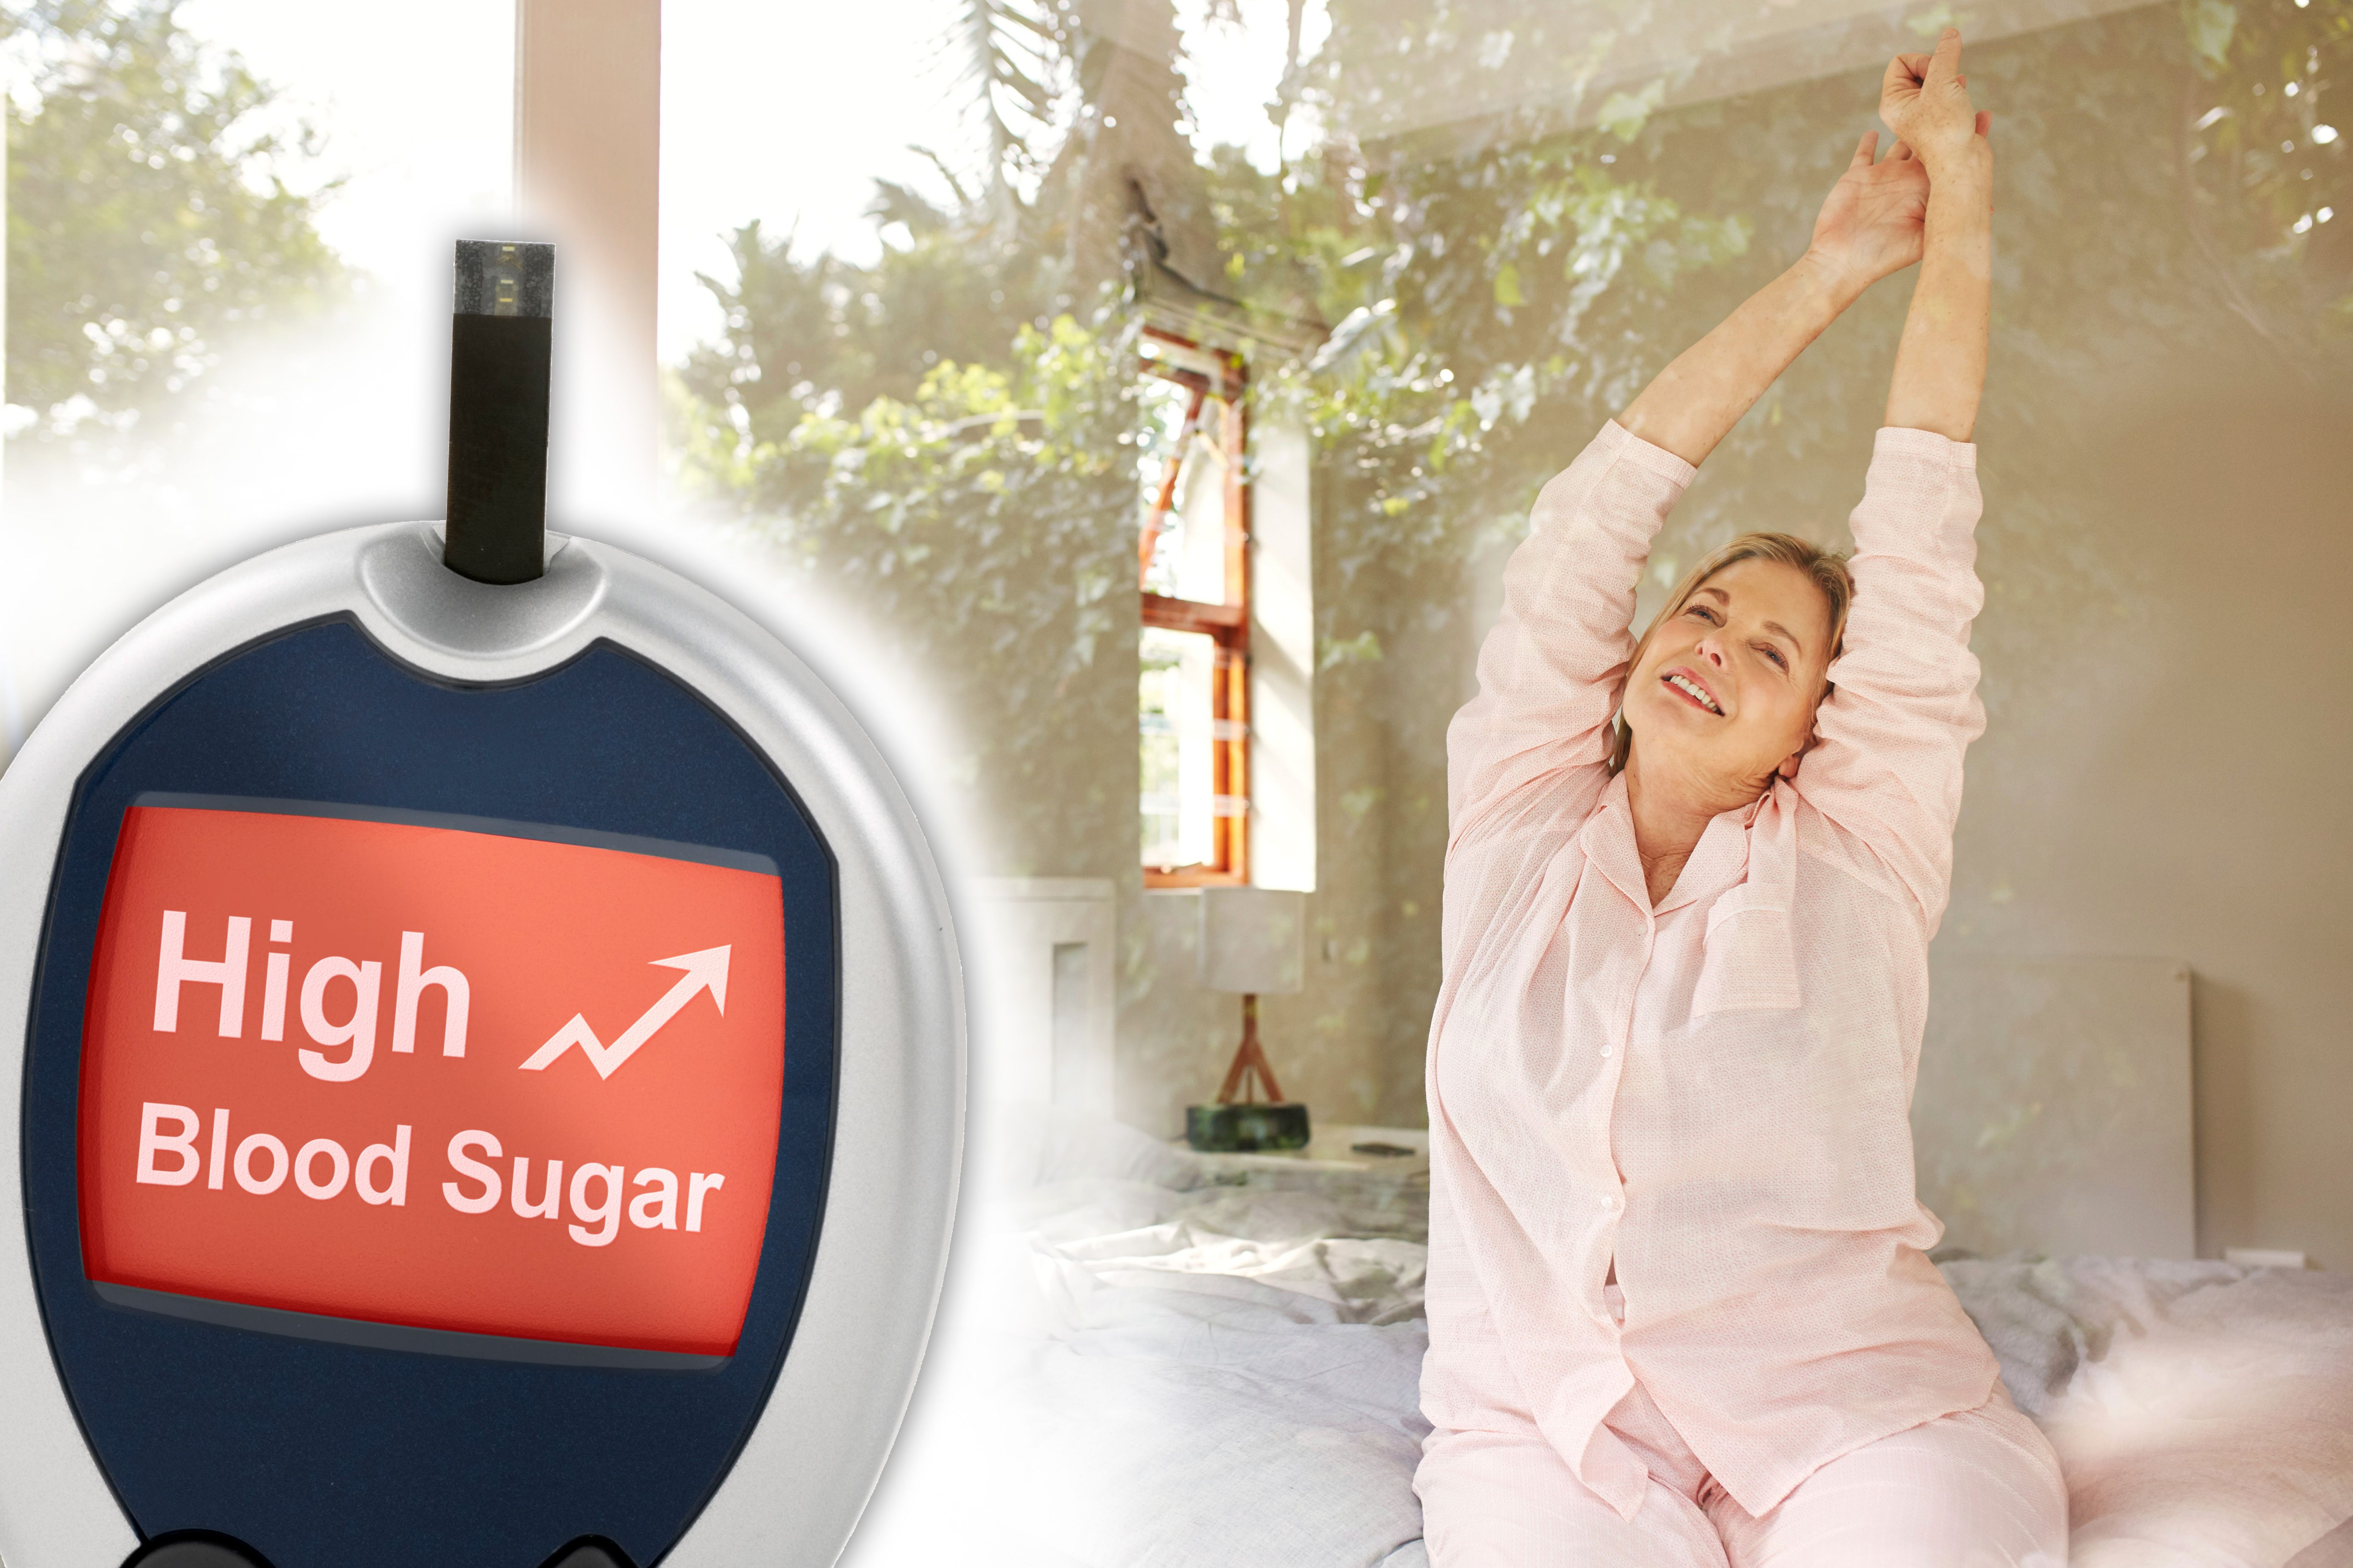 Getting high blood sugars after a period of fasting is often puzzling to those not familiar with the Dawn Phenomenon. Why are blood sugars elevated if you haven't eaten overnight? This effect is also seen during fasting, even during prolonged fasting. There are two main effects – the Somogyi Effect and the Dawn Phenomenon. Somogyi...